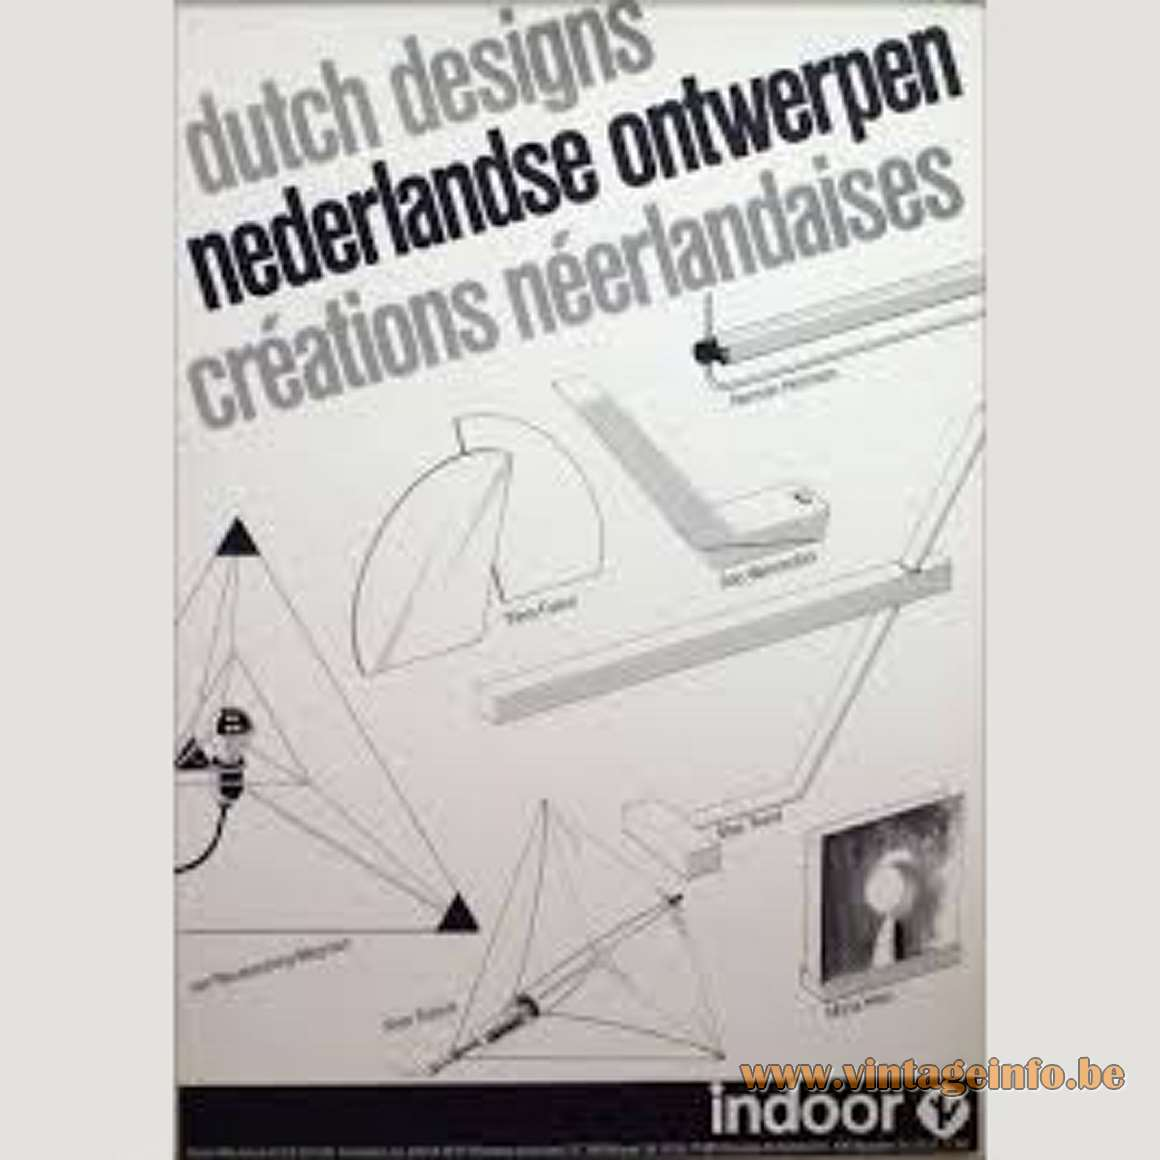 Indoor deLamp - Advertisment - Dutch Designs